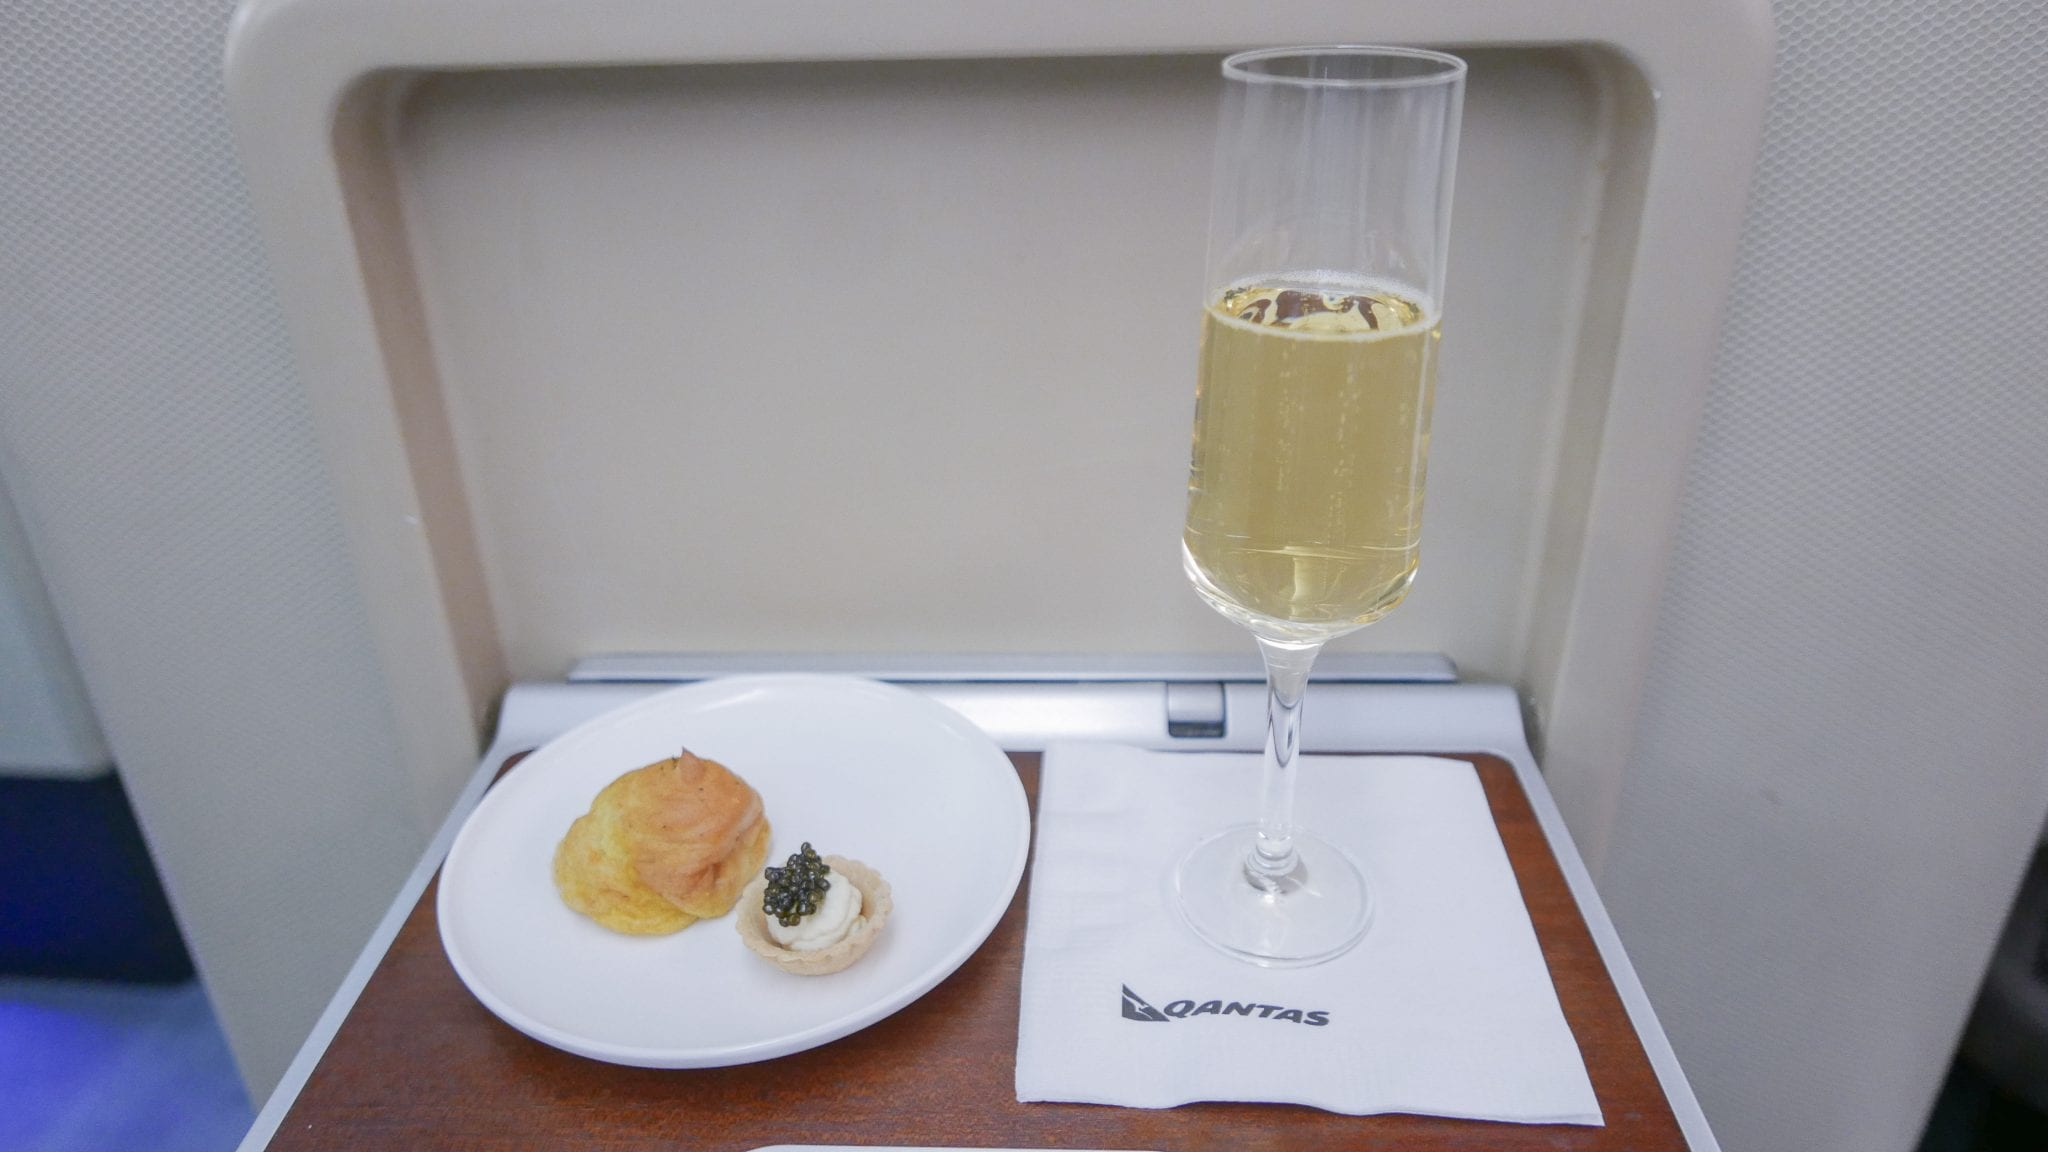 QF F LHR DXB 15 - TRIP REPORT - A luxurious long weekend in Abu Dhabi